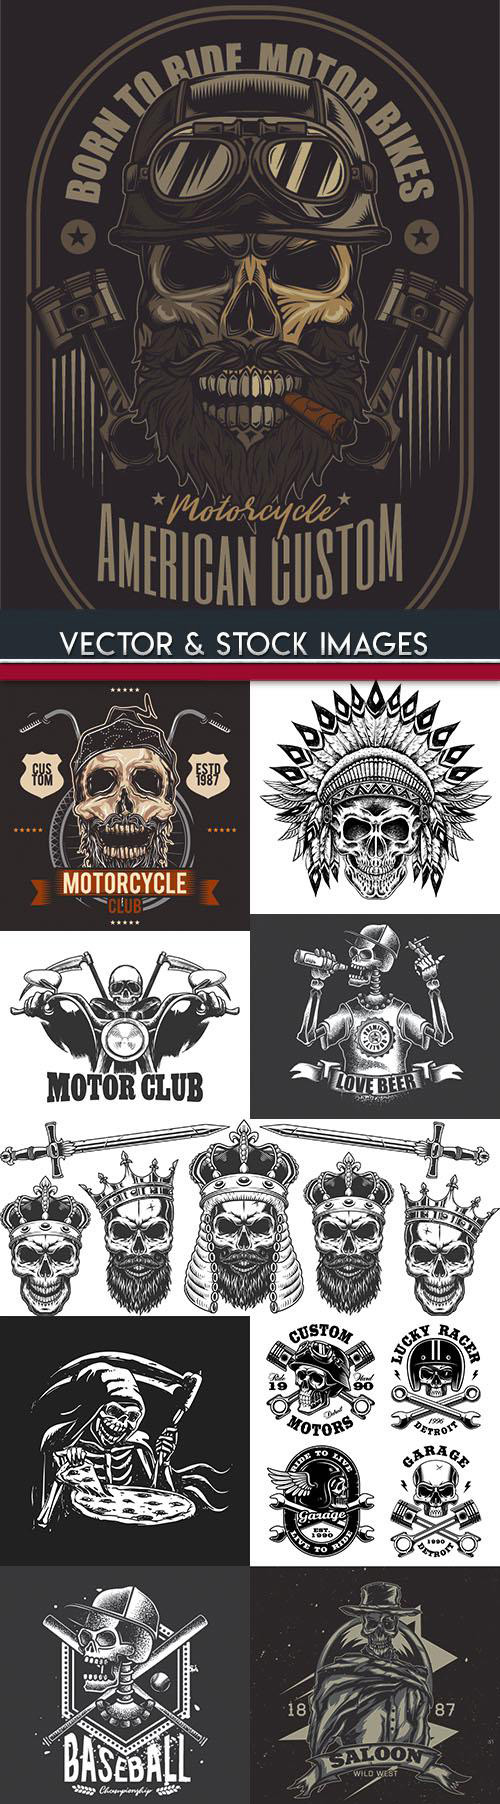 Grunge skull and motorcycle design template 2